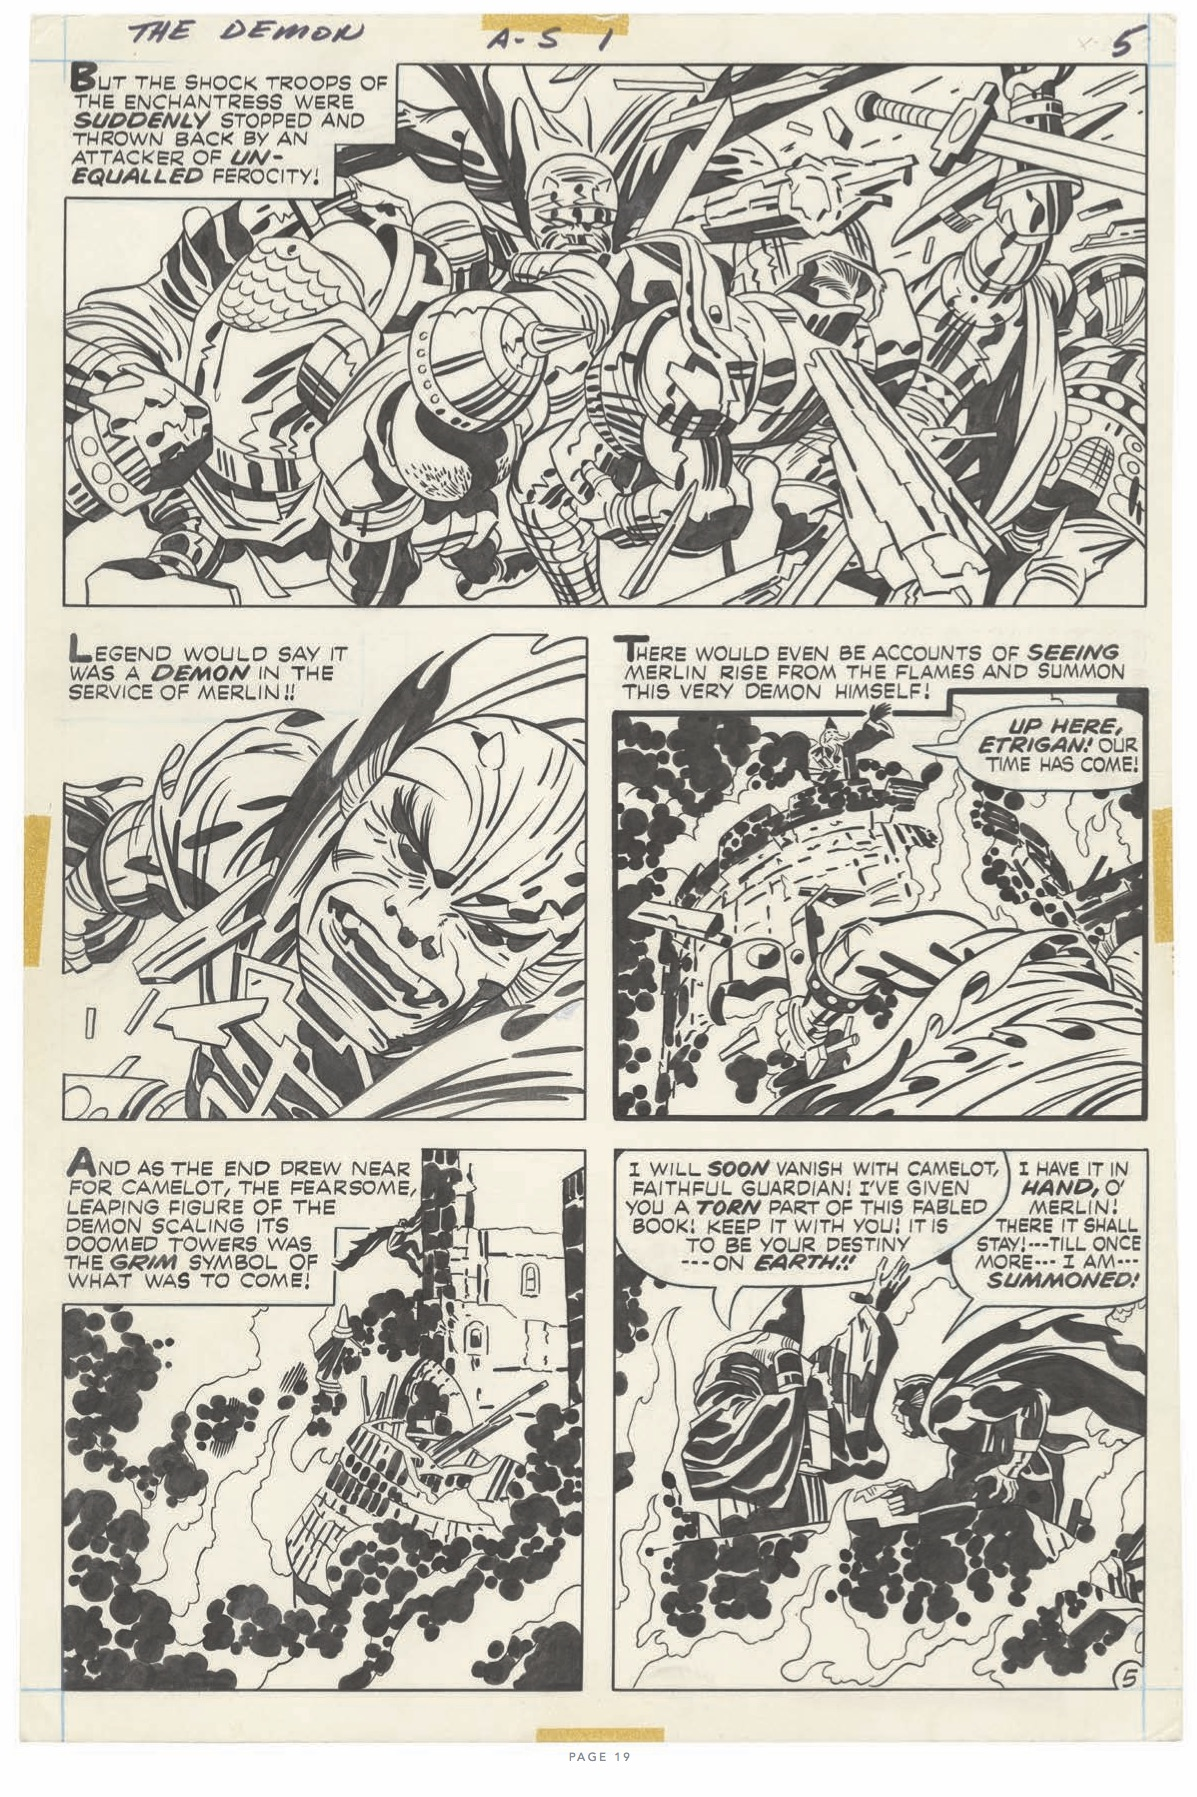 jackkirby_pencils_inks-lodemon2ink